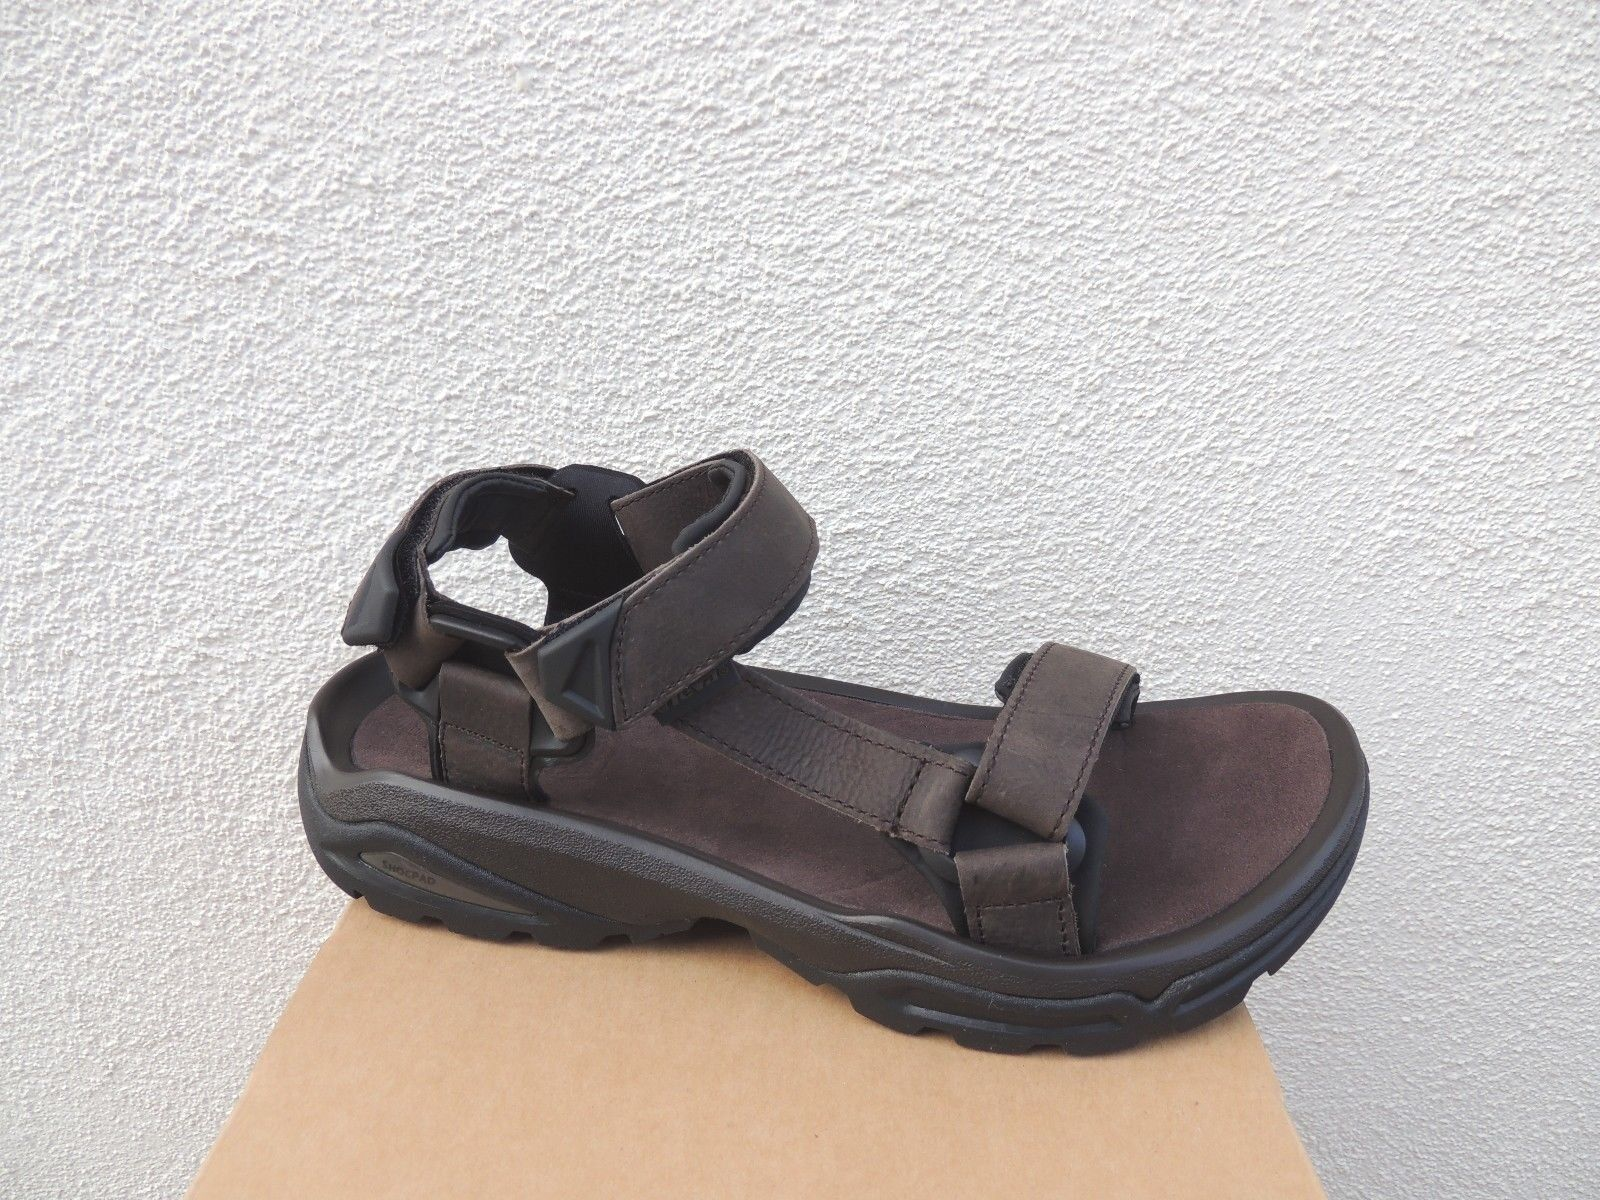 TEVA TERRA LEATHER FI 4 TURKISH COFFEE LEATHER TERRA SPORT HIKING SANDALS, US 11/ EUR 44.5 NIB 8db9c7